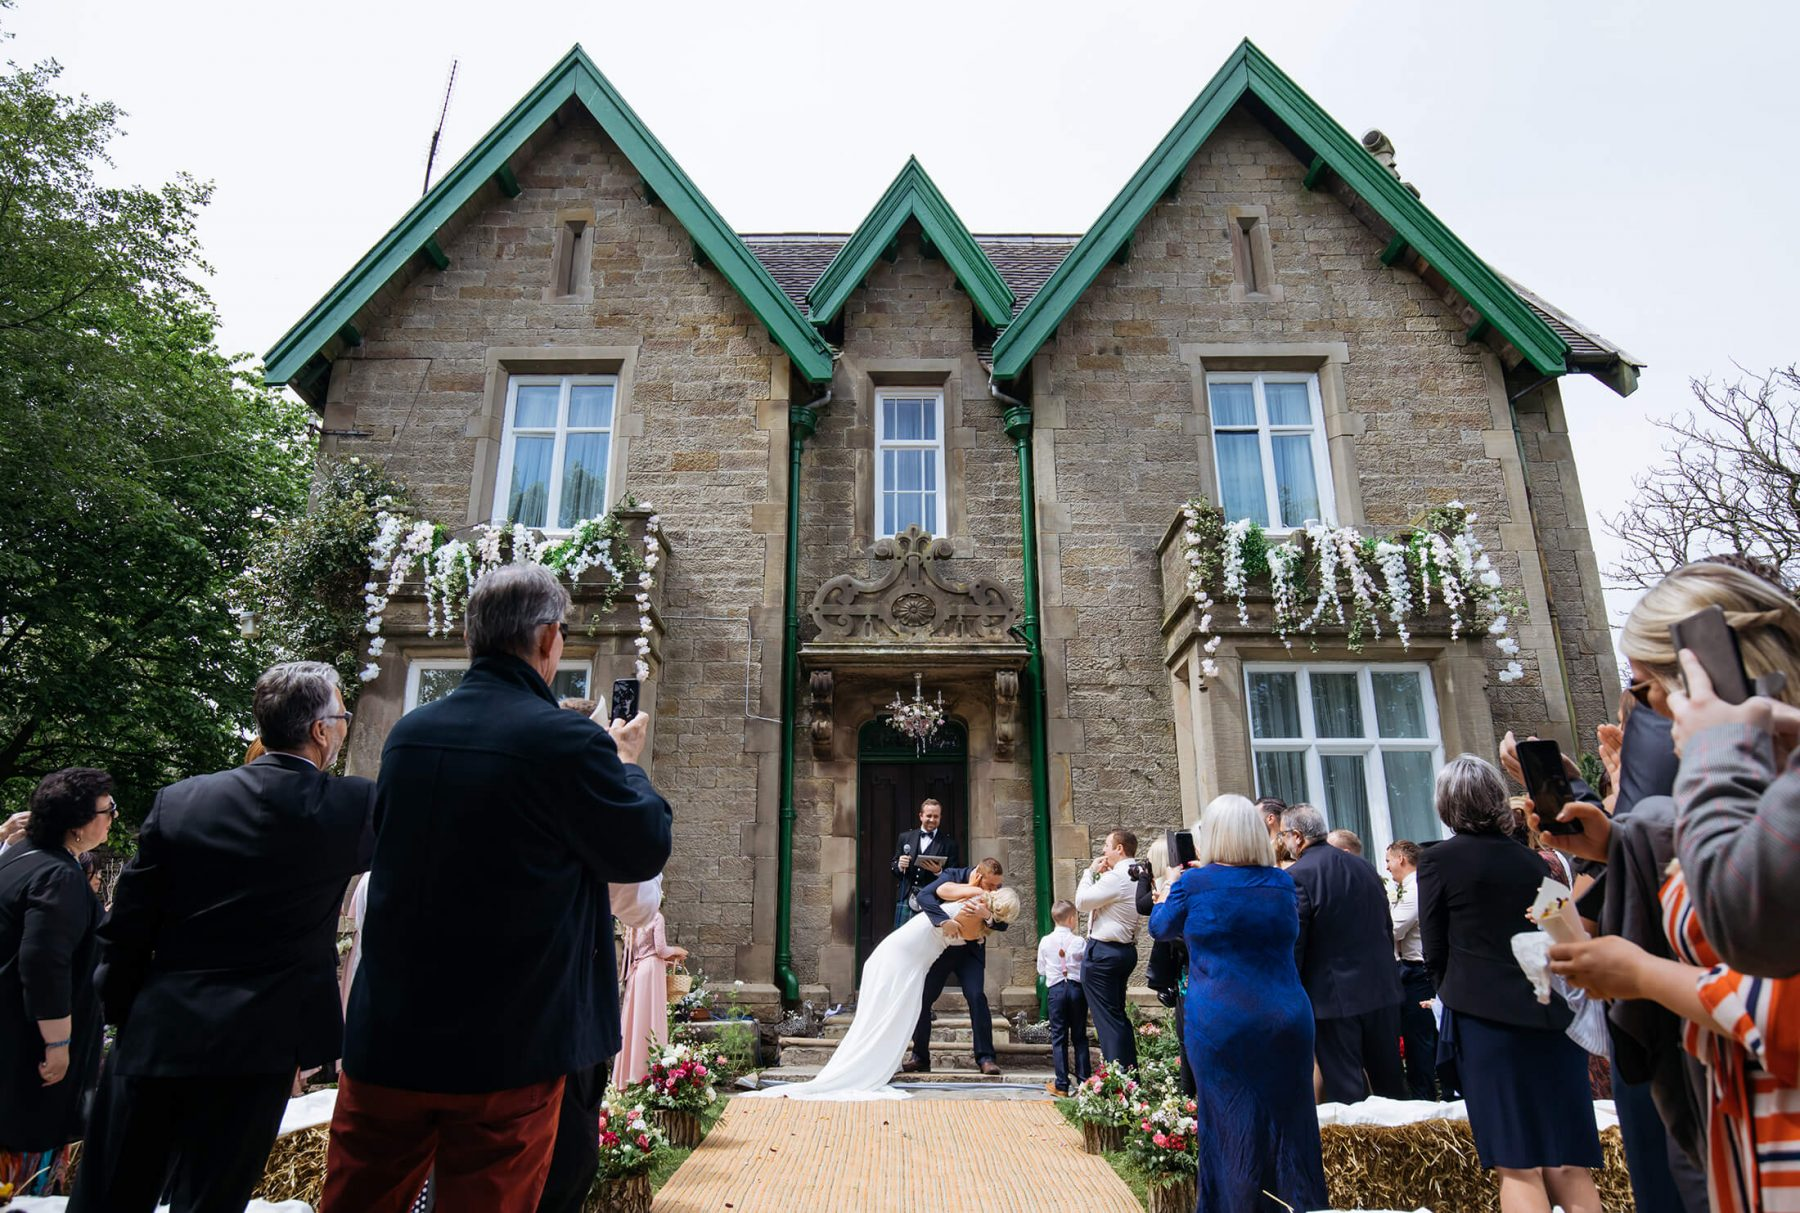 The bride and groom kiss outside a county house following their wedding